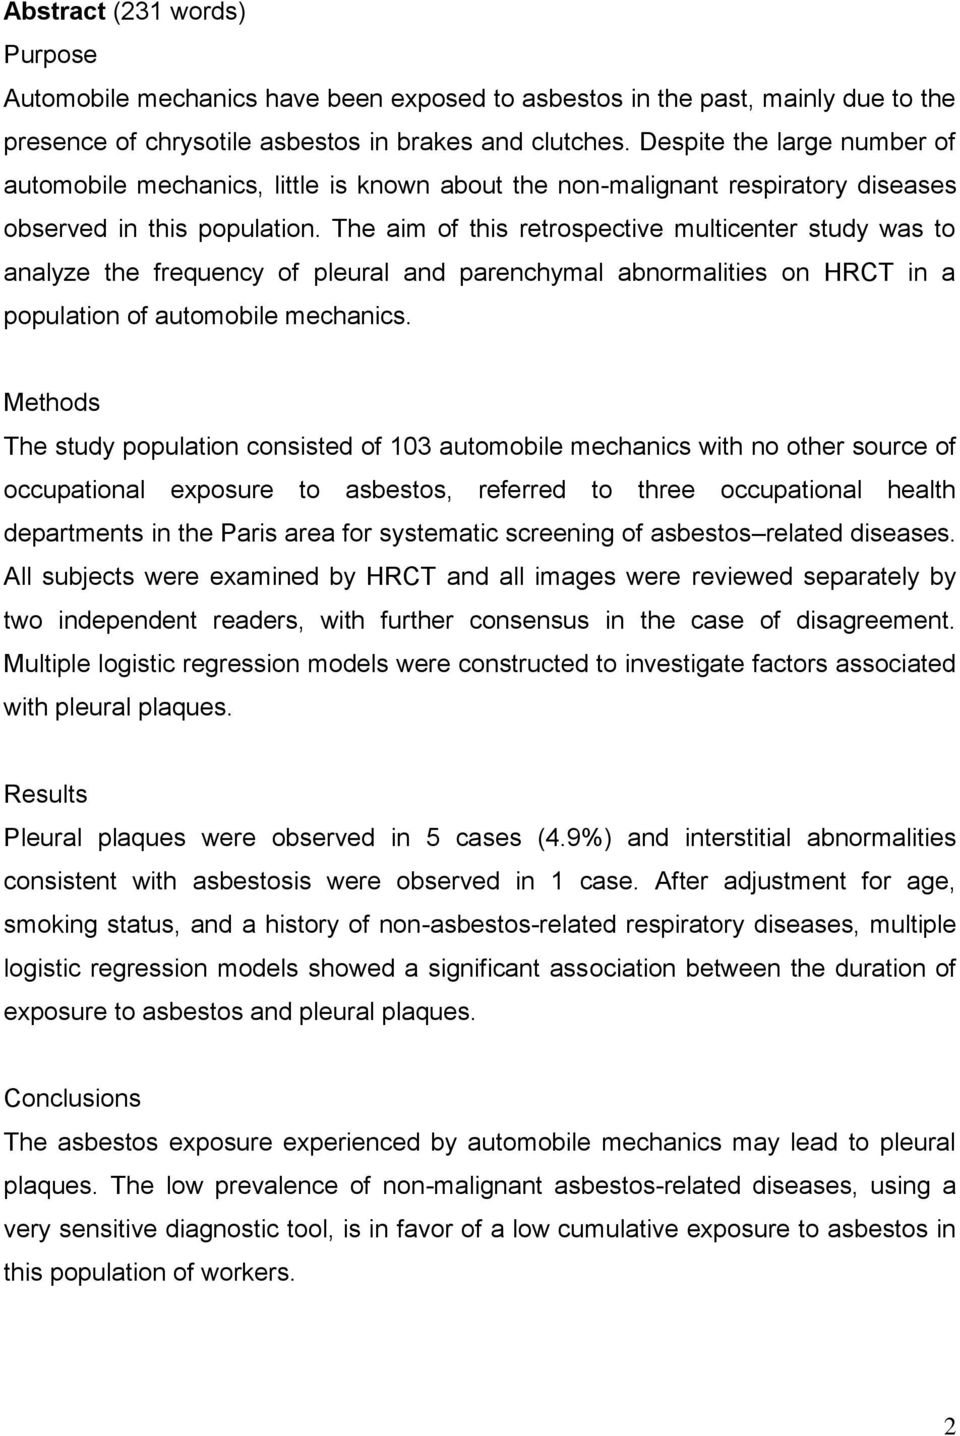 The aim of this retrospective multicenter study was to analyze the frequency of pleural and parenchymal abnormalities on HRCT in a population of automobile mechanics.